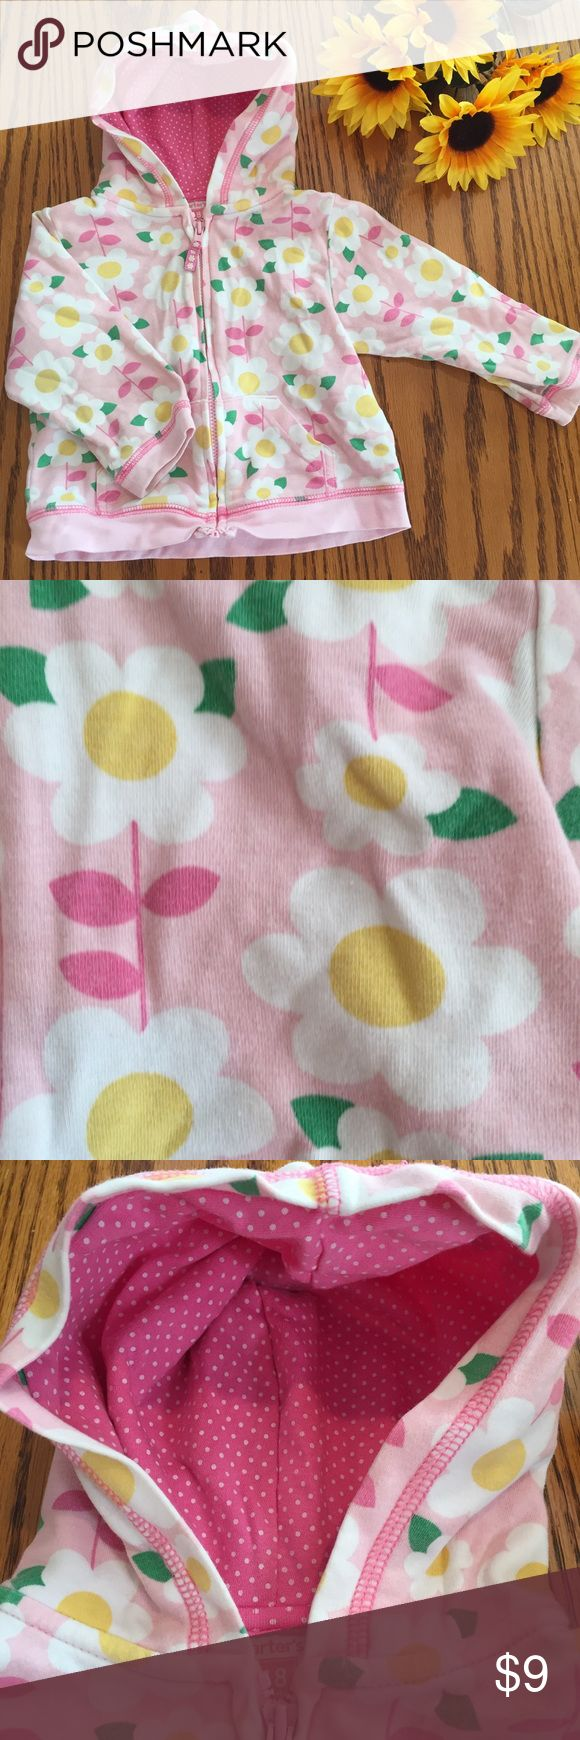 Carter's Pink cotton daisy Floral zip up. 18 month Excellent condition Carter's Pink cotton daisy Floral zip up. 18 months Carter's Shirts & Tops Sweatshirts & Hoodies